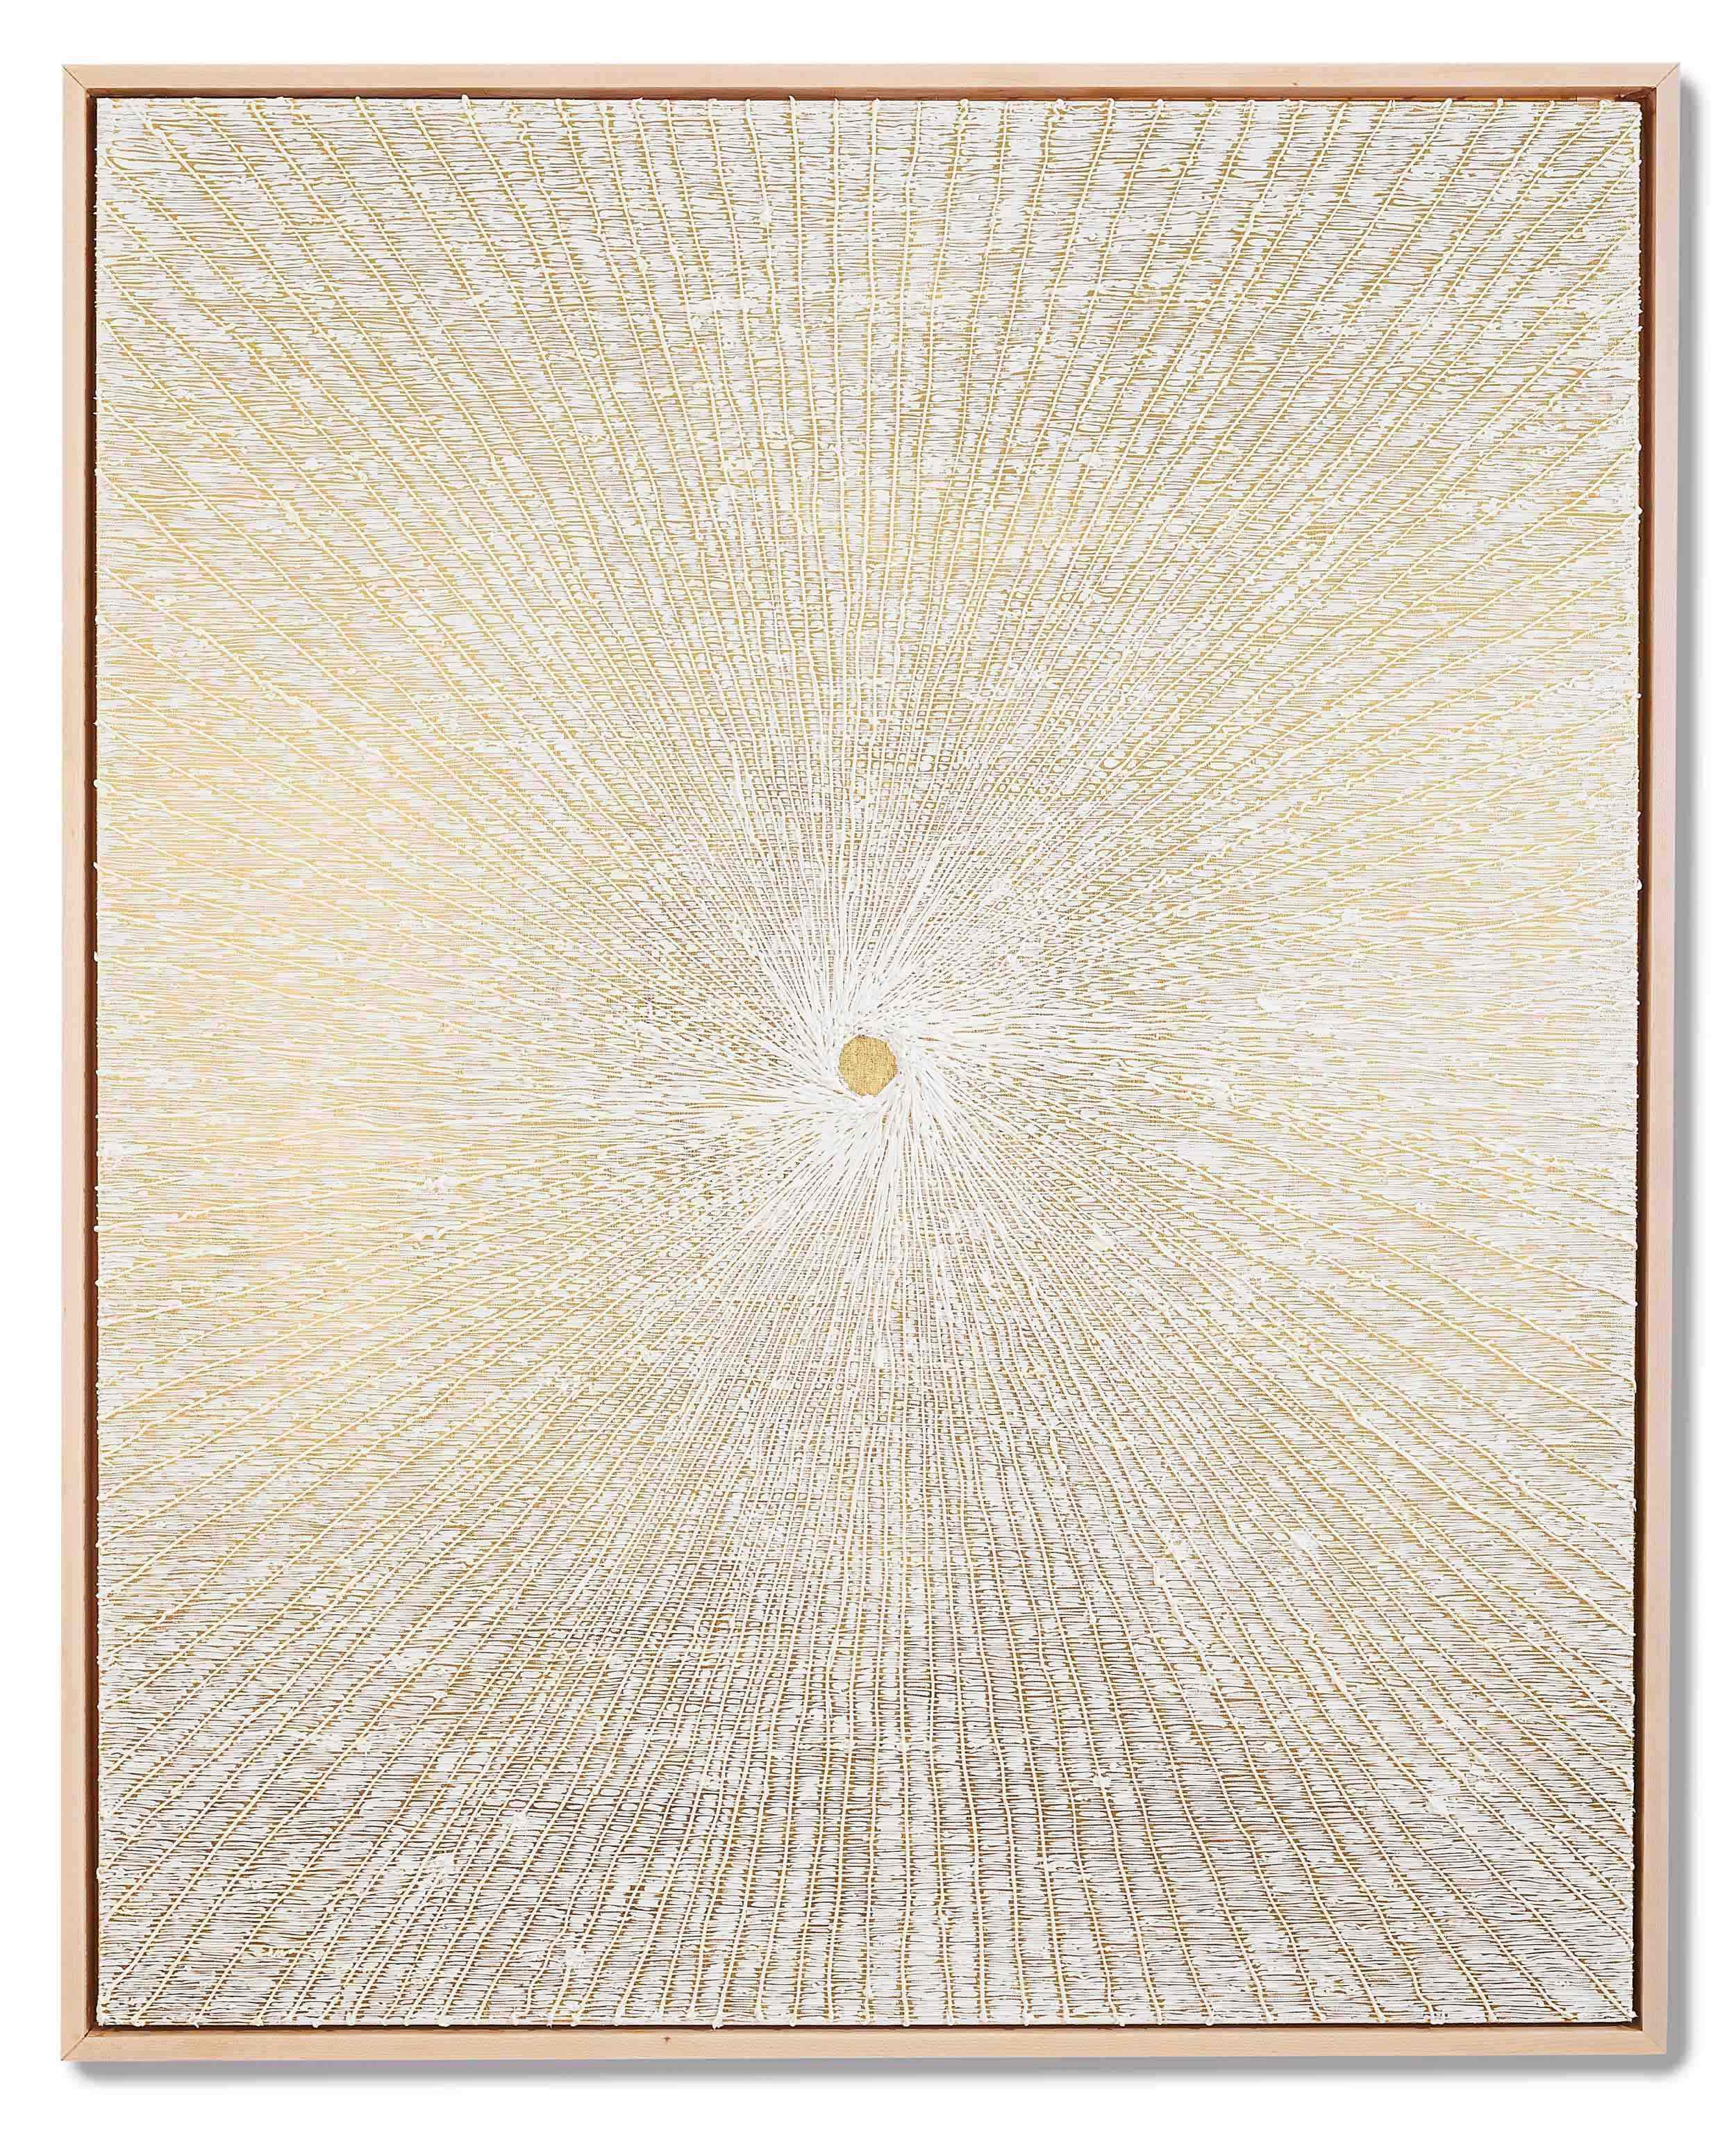 Michael Brown 2019 Oil on 24k gold in wood frame 60 x 48 x 2.5 inches (152.4 x 121.9 x 6.4 cm) 2019 Marc Straus Gallery